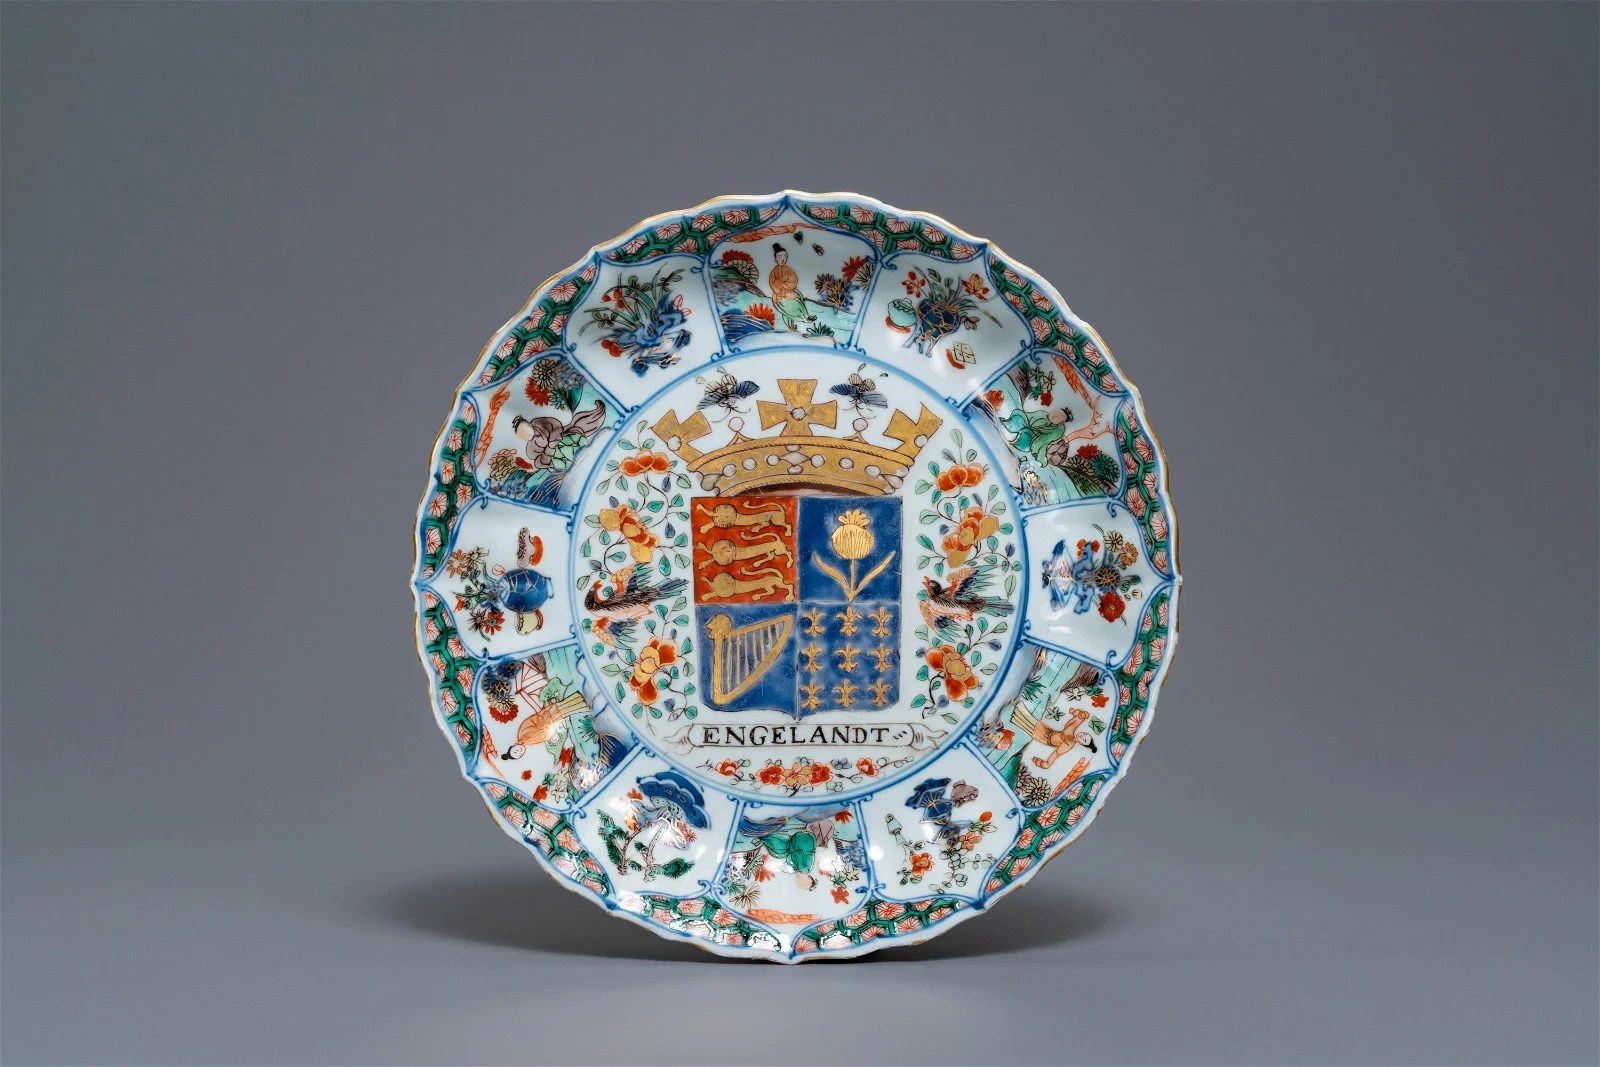 A Chinese famille verte 'Provinces' dish with the arms